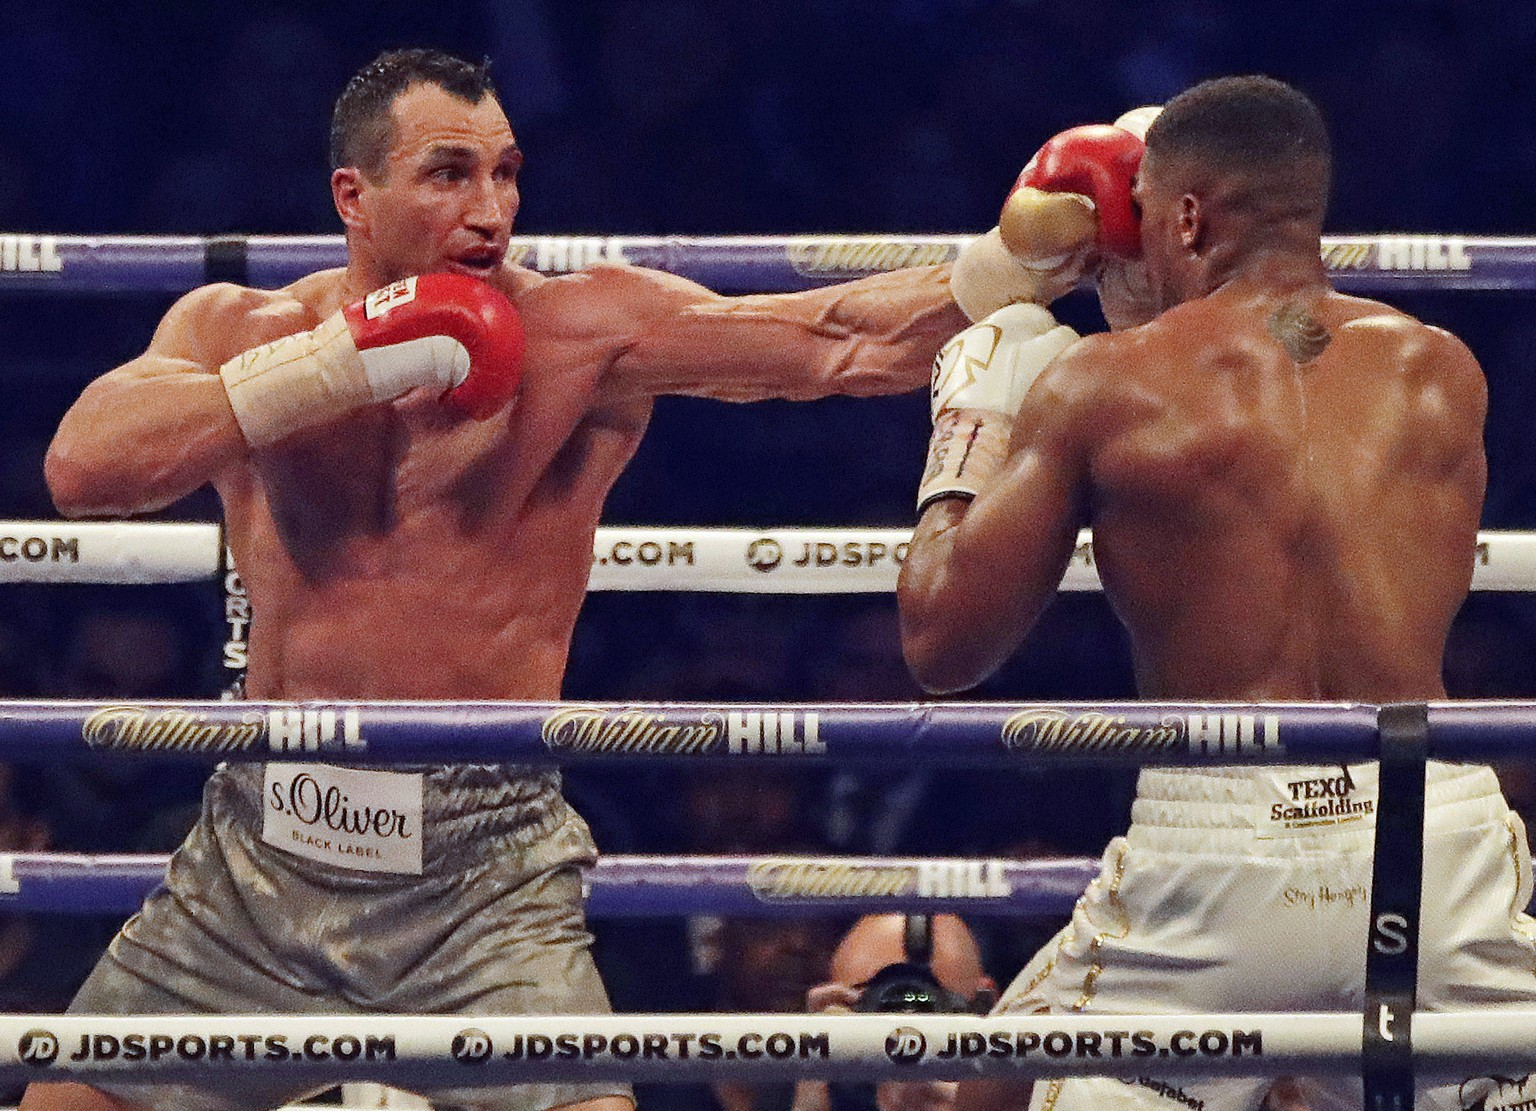 ARCHIVBILD ZU SDA-TEXT: LETZTER KAMPF VON WLADIMIR KLITSCHKO - This is a Saturday, April 29, 2017 file photo of Ukrainian boxer Wladimir Klitschko, left, as he lands a punch on British boxer Anthony Joshua, in the bout for Joshua's IBF and the vacant WBA Super World and IBO heavyweight titles at Wembley stadium in London. Former heavyweight world champion Wladimir Klitschko announced his retirement from boxing. In a statement released by his management Thursday, Aug. 3, 2017. The bout against Joshua was Klitschko's last fight.(AP Photo/Matt Dunham,File)